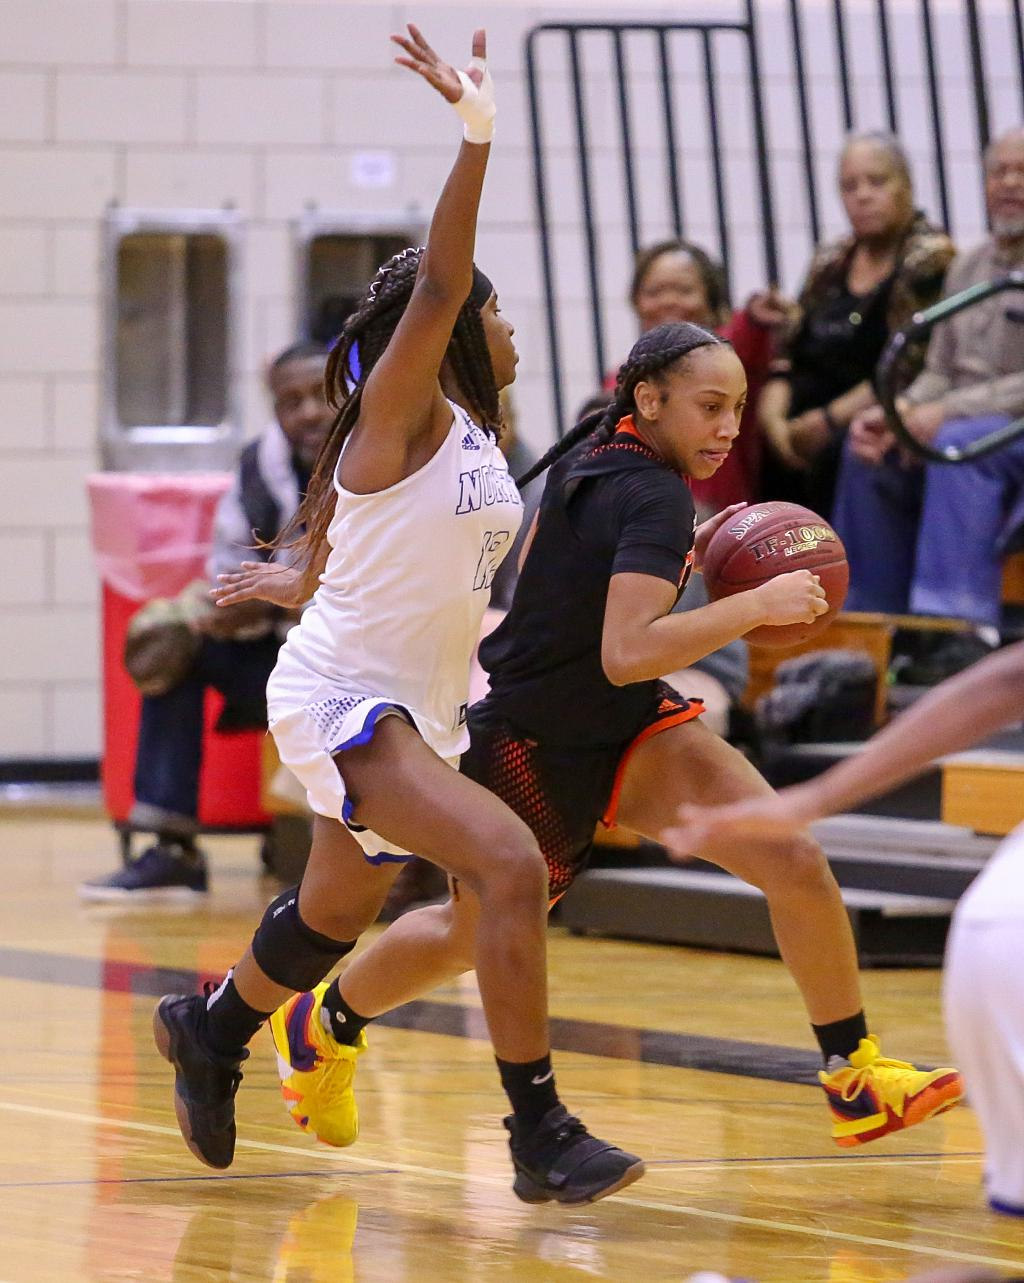 Jade Hill brings the ball up court past defender Tiffany McNeill (12). Hill led all scorers with 22 points helping the Tigers hang on to defeat the Polars 62-59 on Tuesday night. Photo by Cheryl Myers, SportsEngine